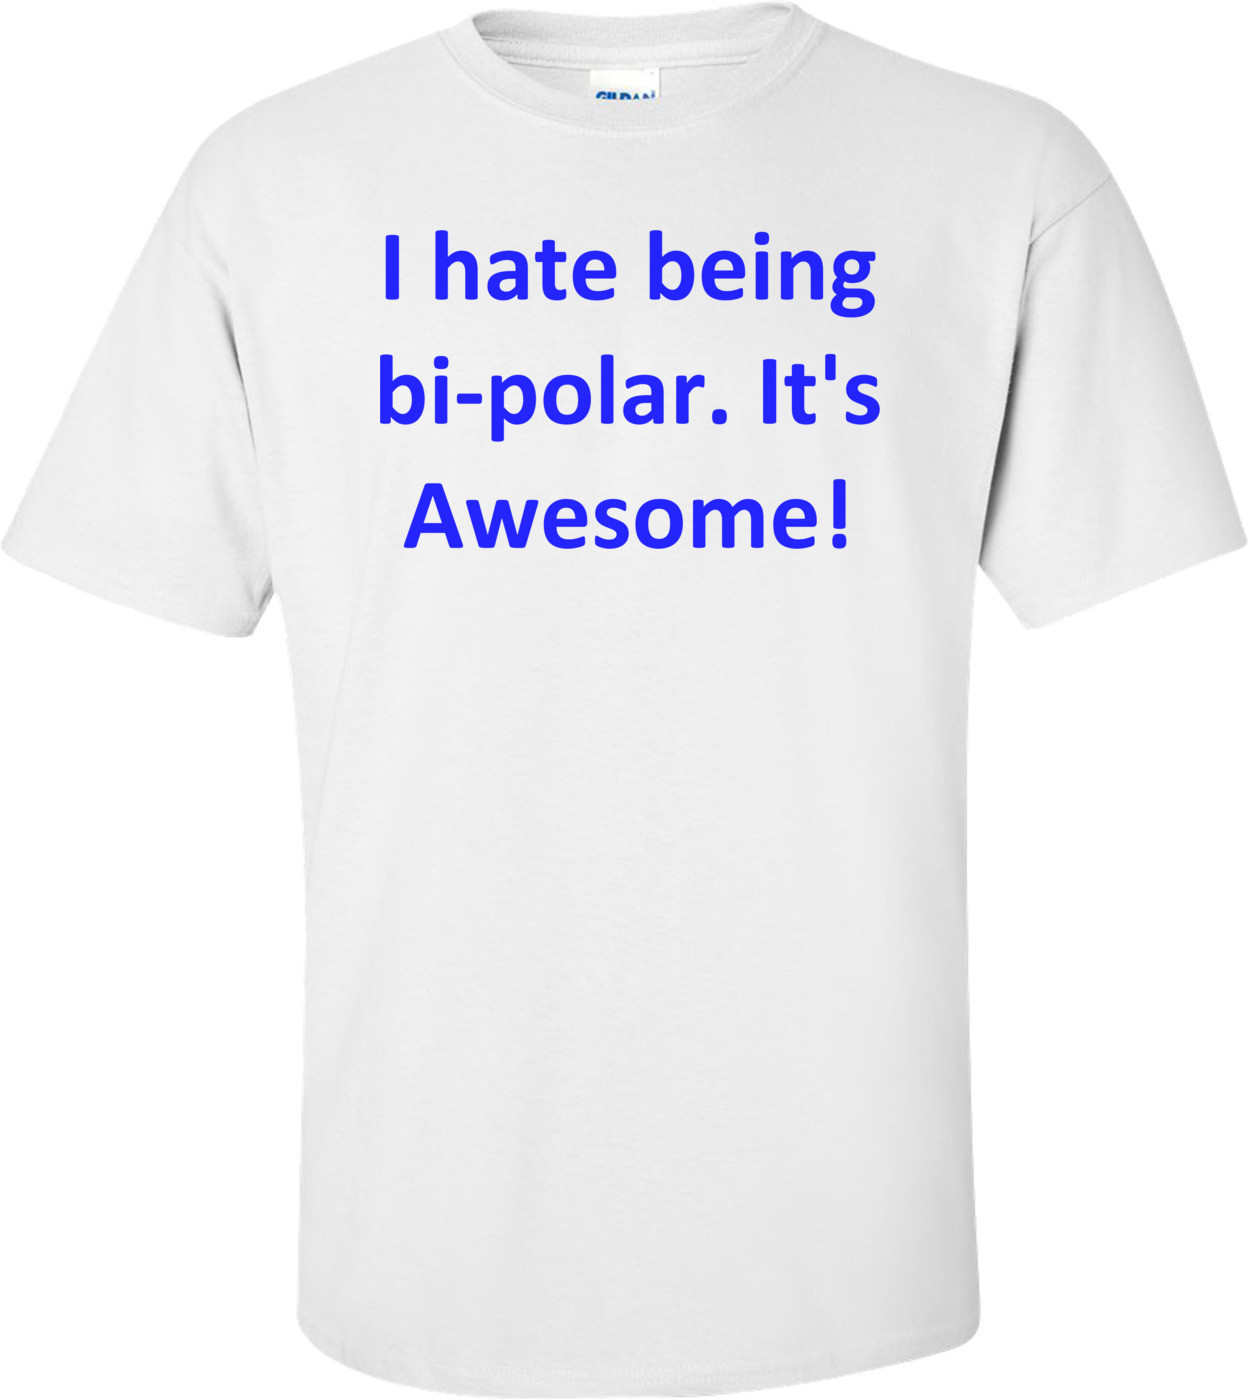 I hate being bi-polar. It's Awesome! Shirt